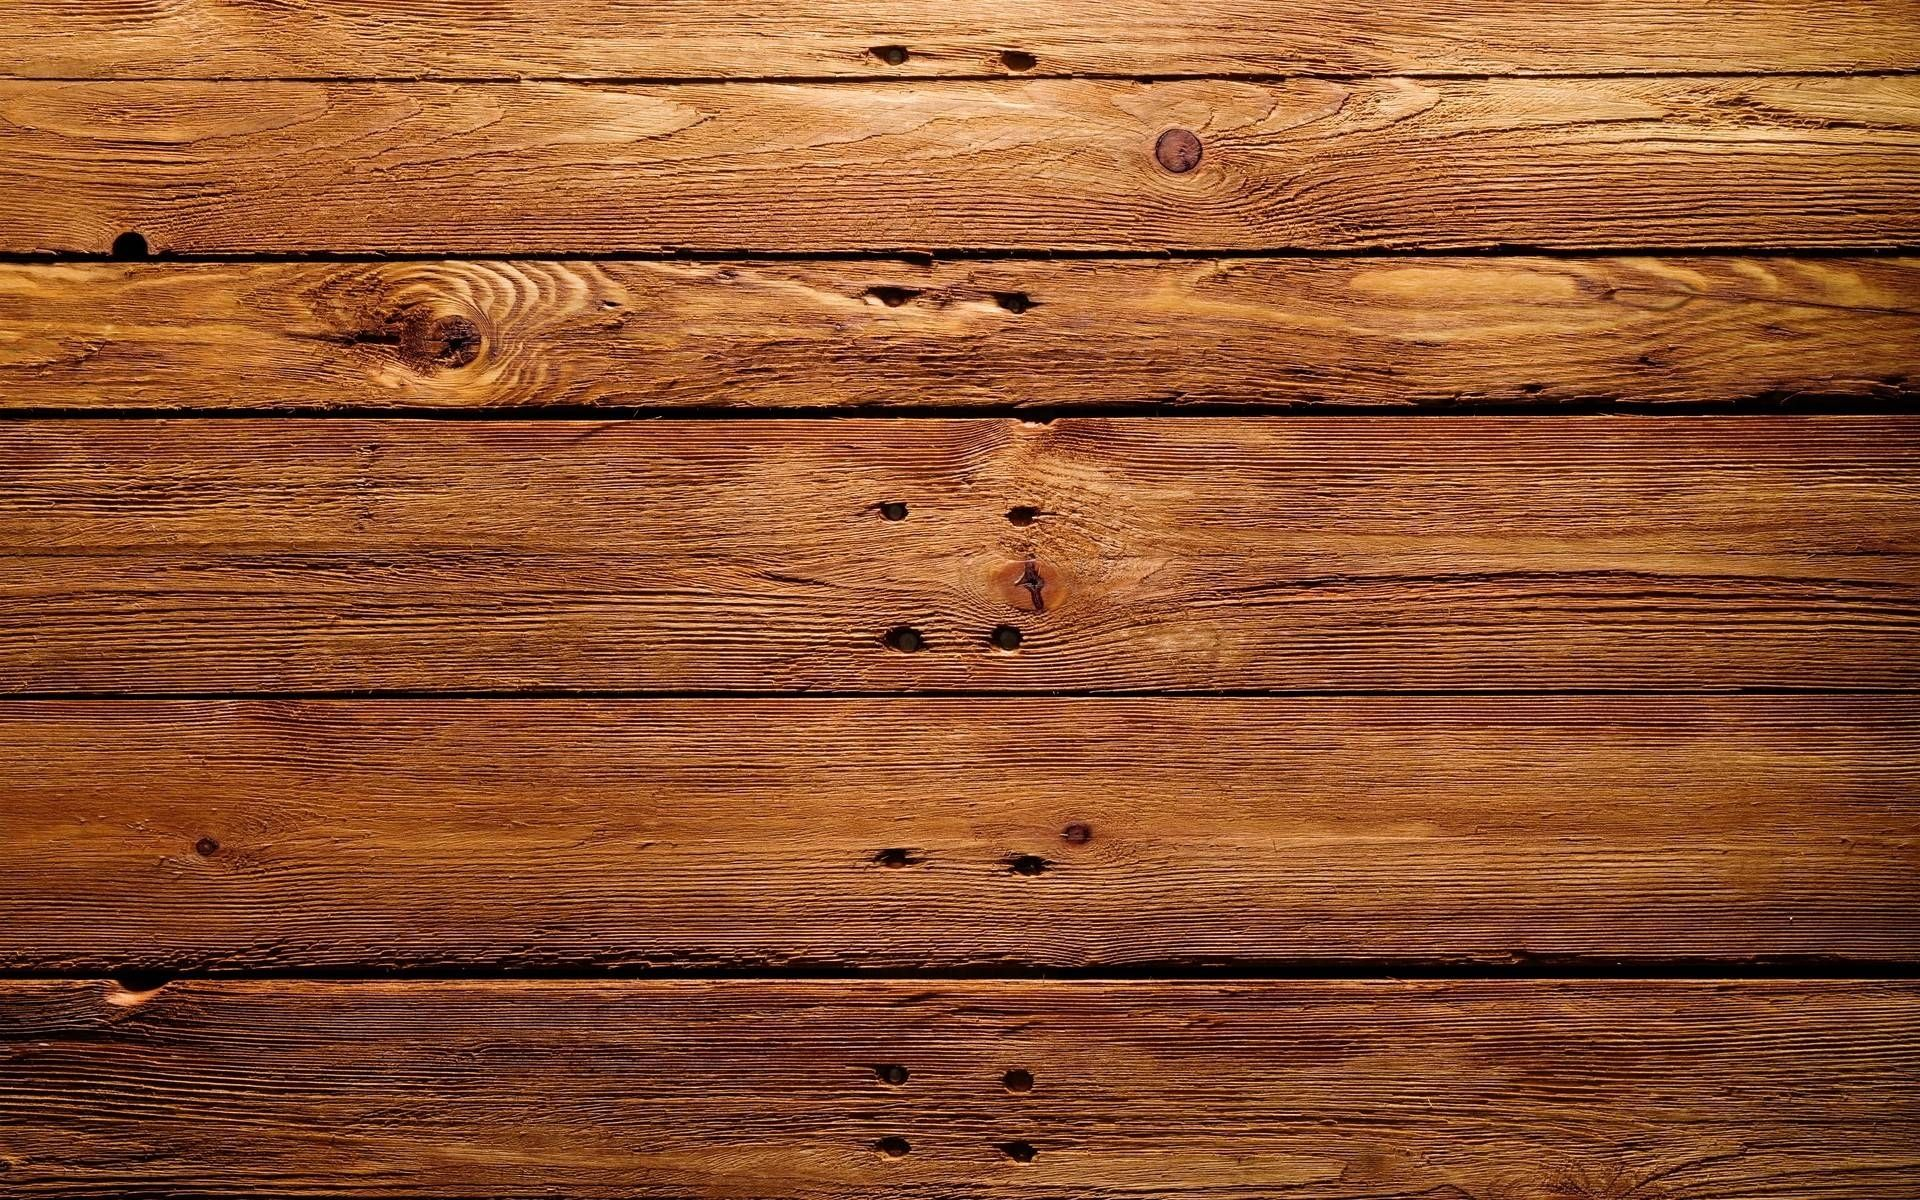 10 Most Popular Wood Desktop Wallpaper Hd Full Hd 1920 1080 For Pc Desktop Wood Grain Wallpaper Wood Wallpaper Rustic Wallpaper